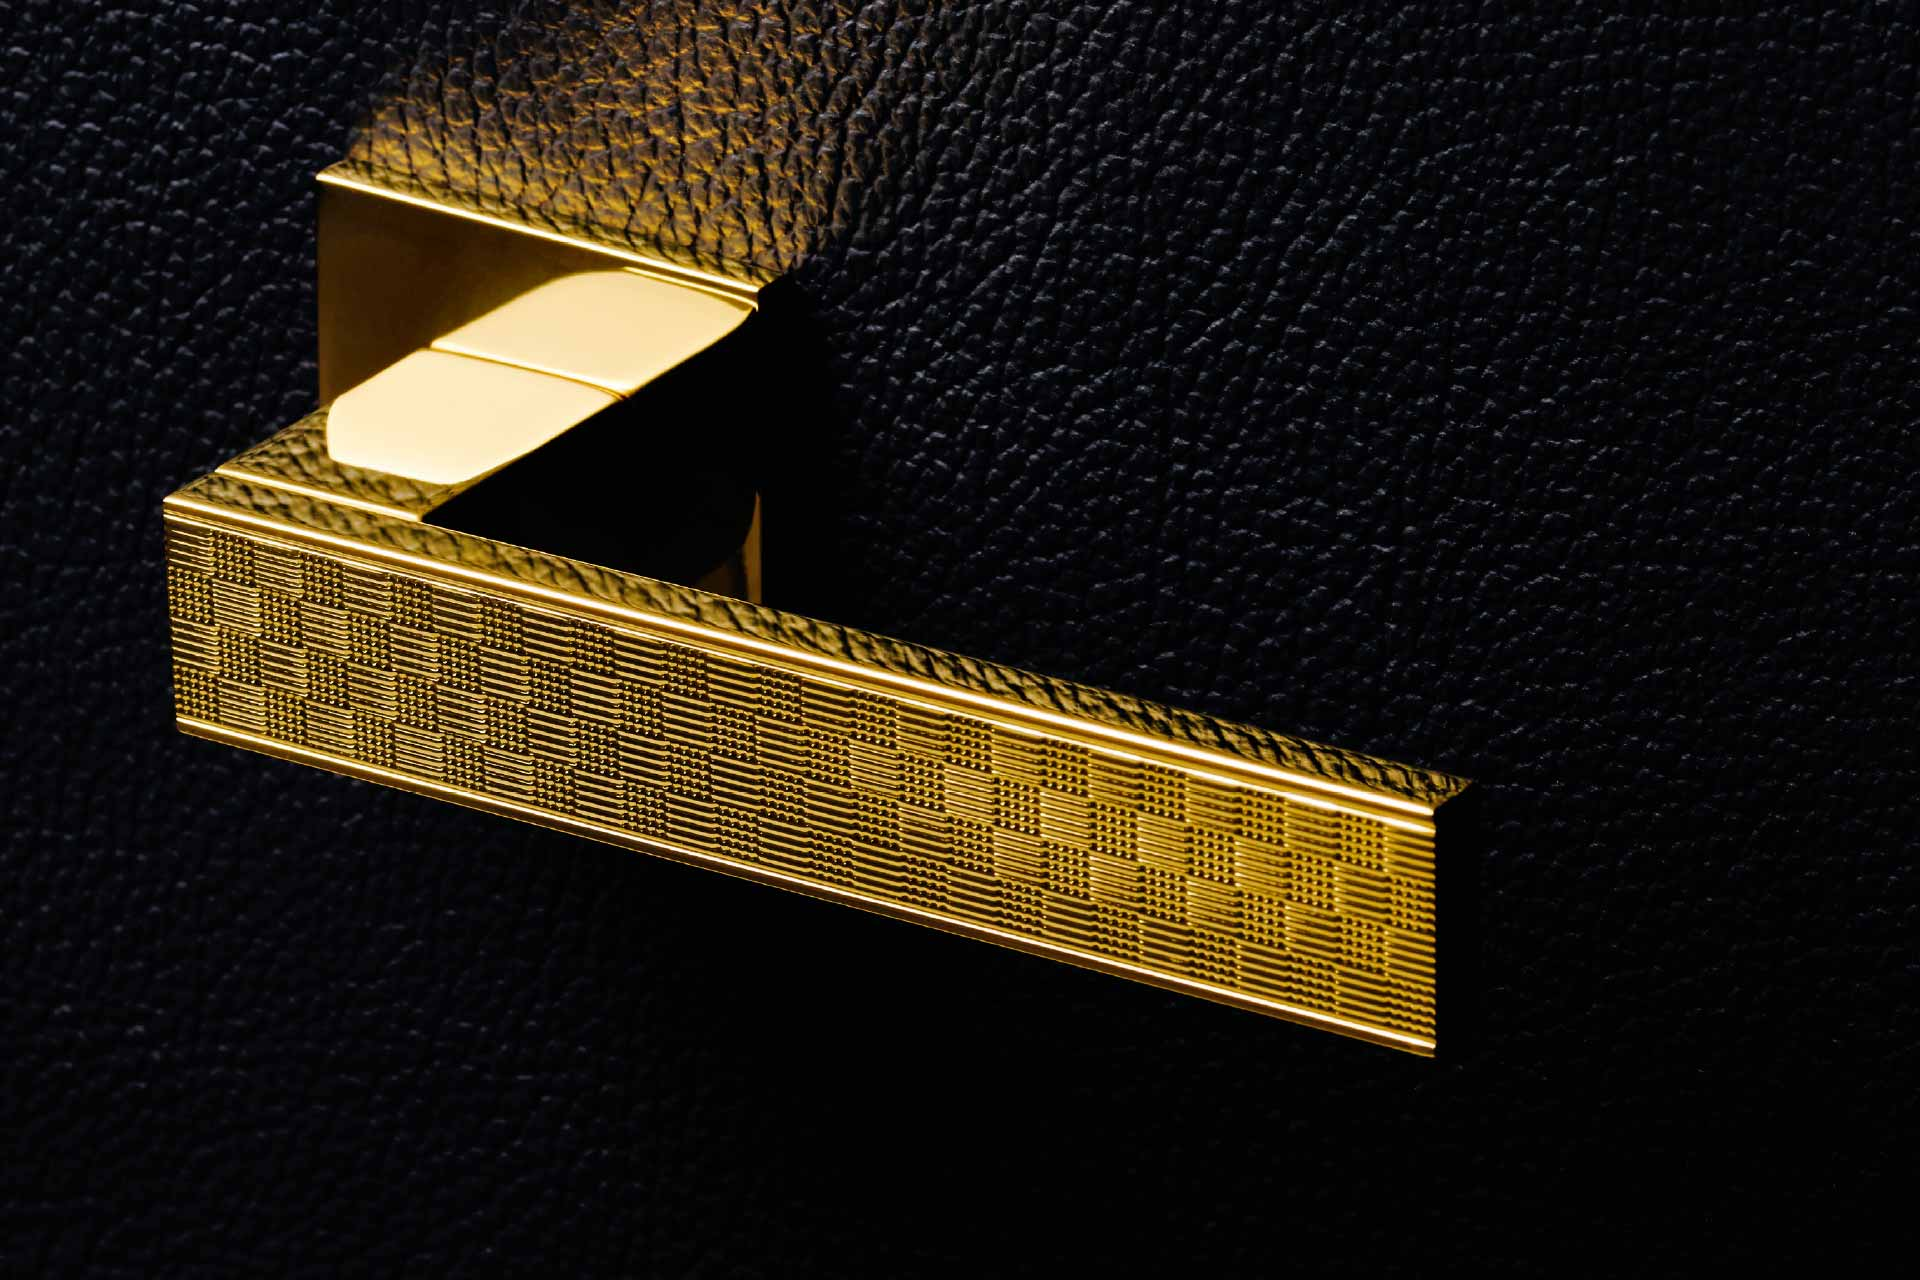 Bellevue Architectural - Diana Damier doorhandle from Olivari with damier guilloche pattern